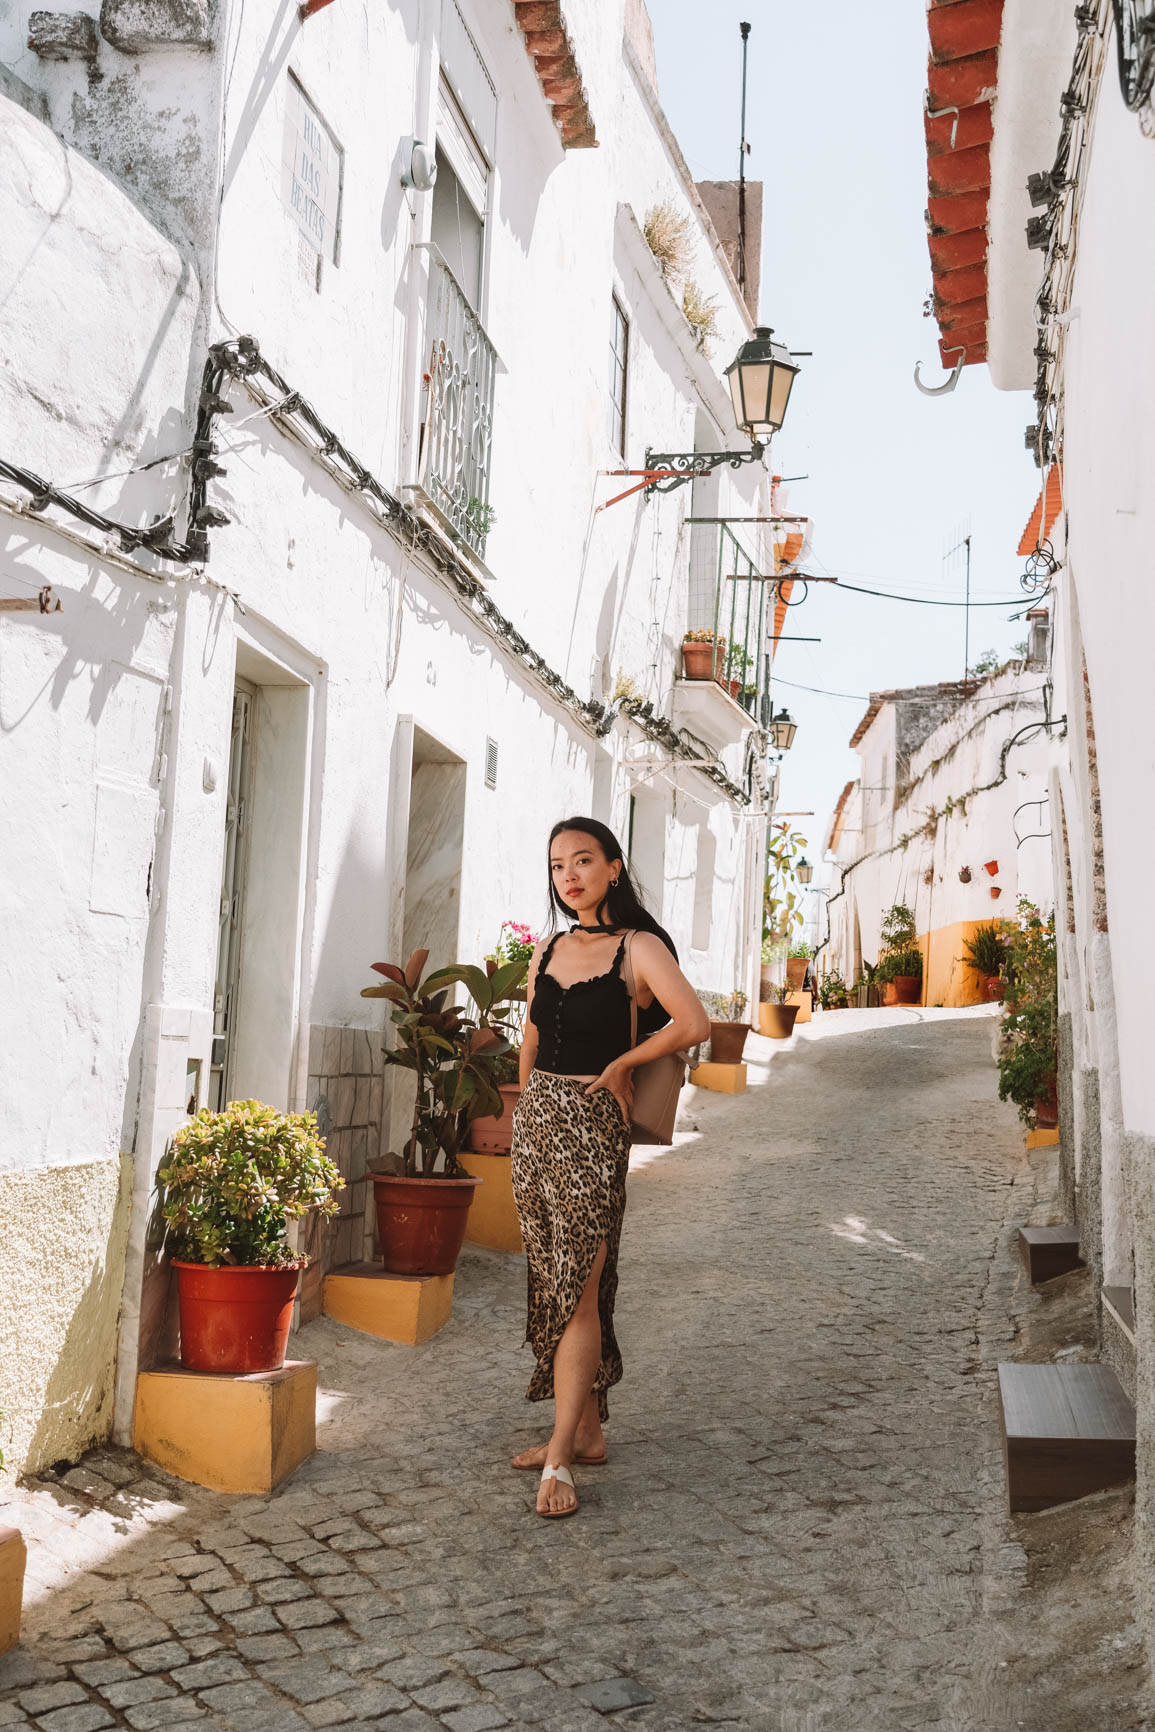 Epic 10 day road trip exploring Portugal on a road trip #Europe Portugal